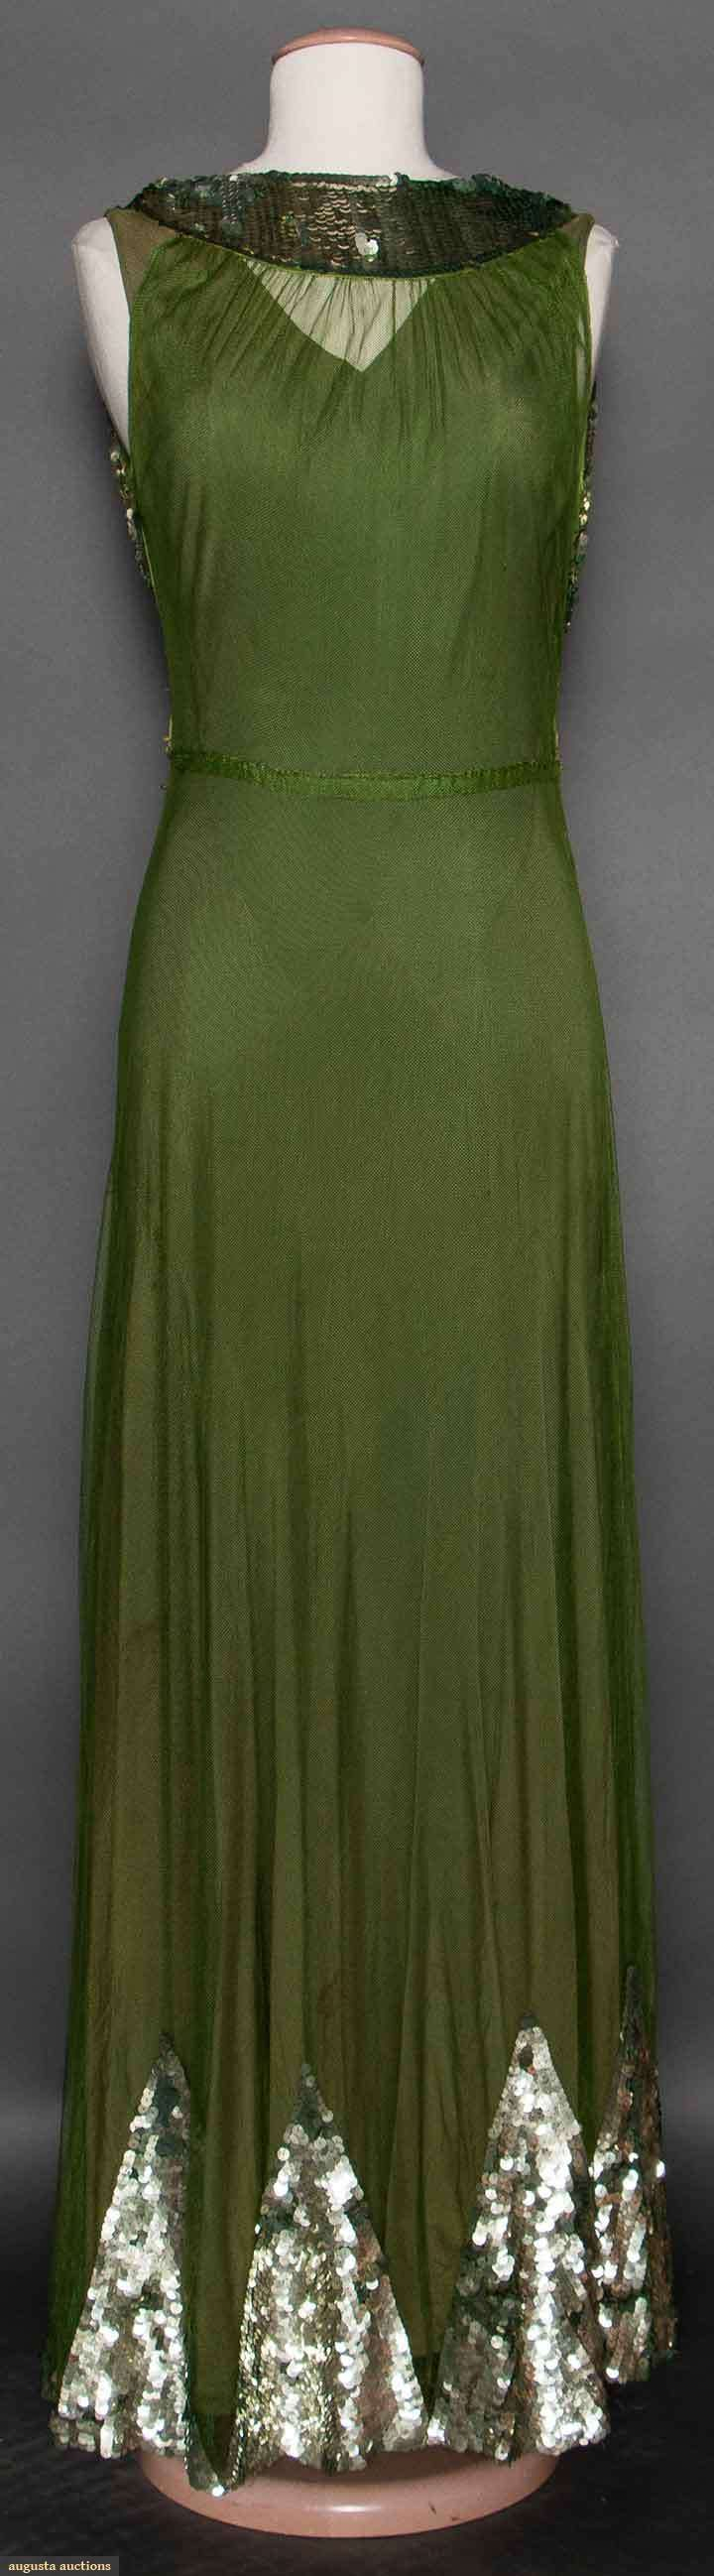 Sequined Green Evening Gown, Late 1930s, Augusta Auctions, April 8, 2015 NYC